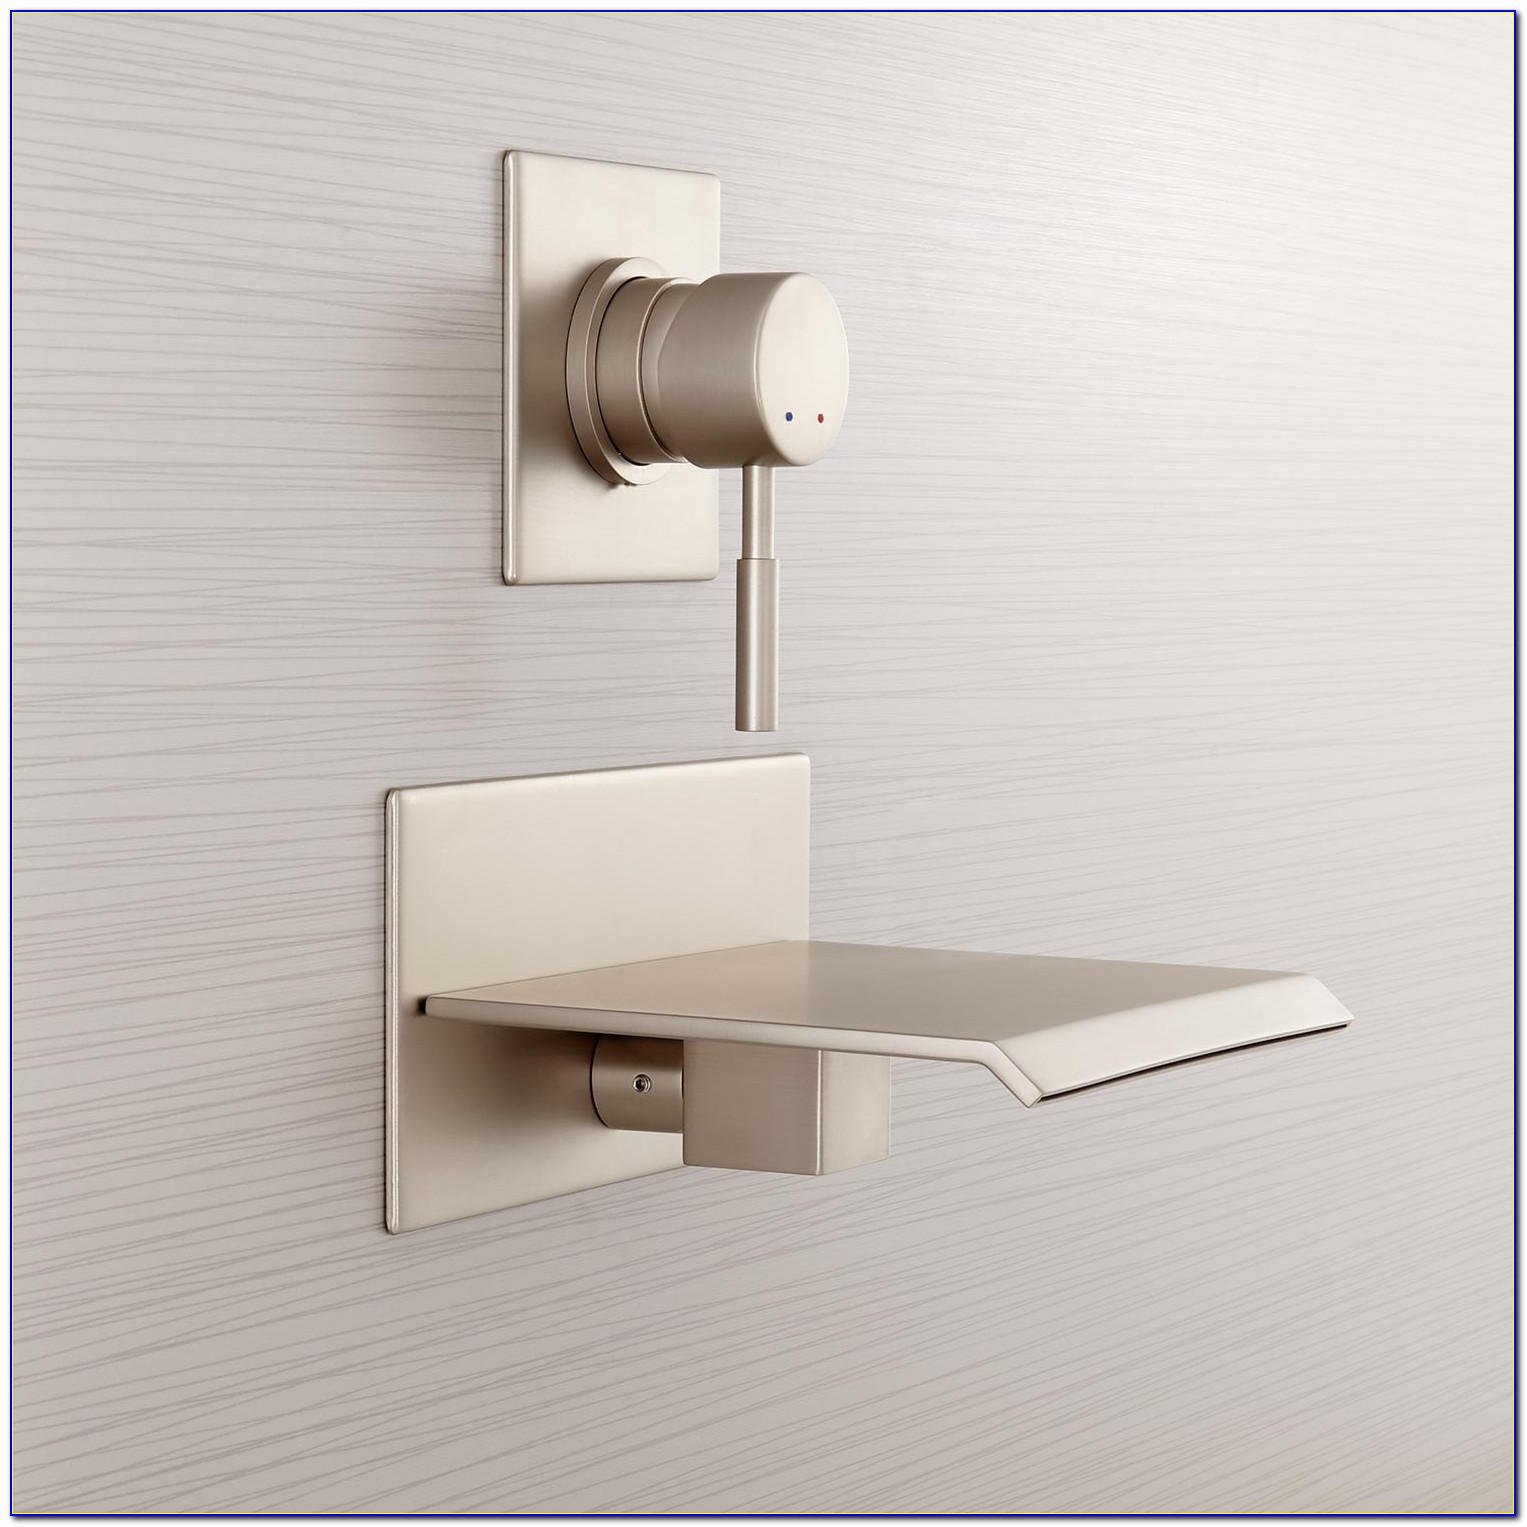 Waterfall Wall Mount Tub Filler Faucet & Hand Shower